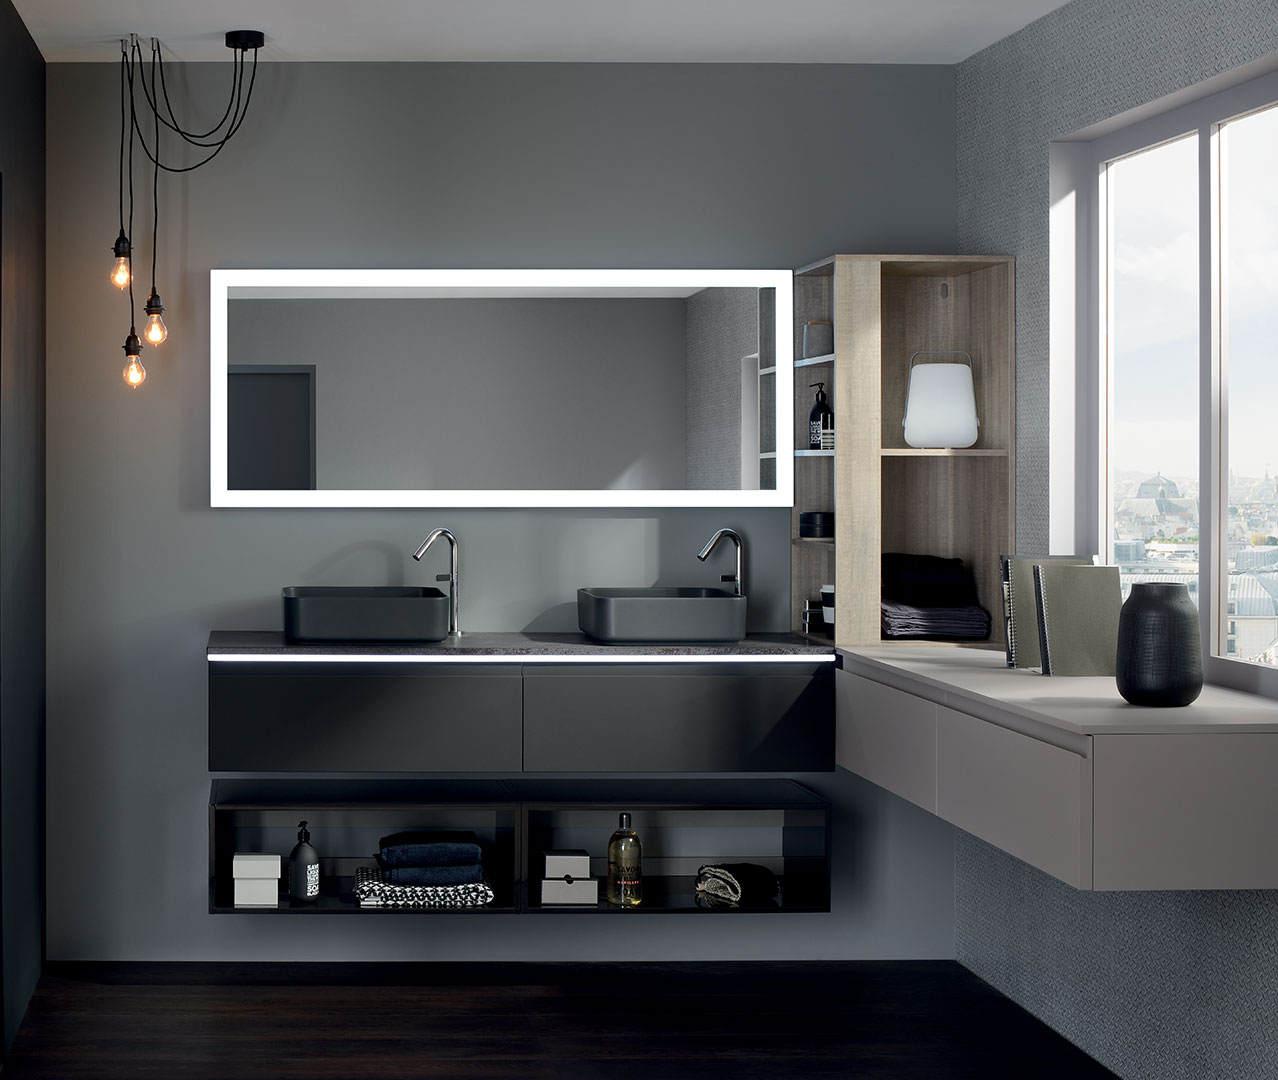 sanijura meuble de salle de bain fabrication fran aise. Black Bedroom Furniture Sets. Home Design Ideas